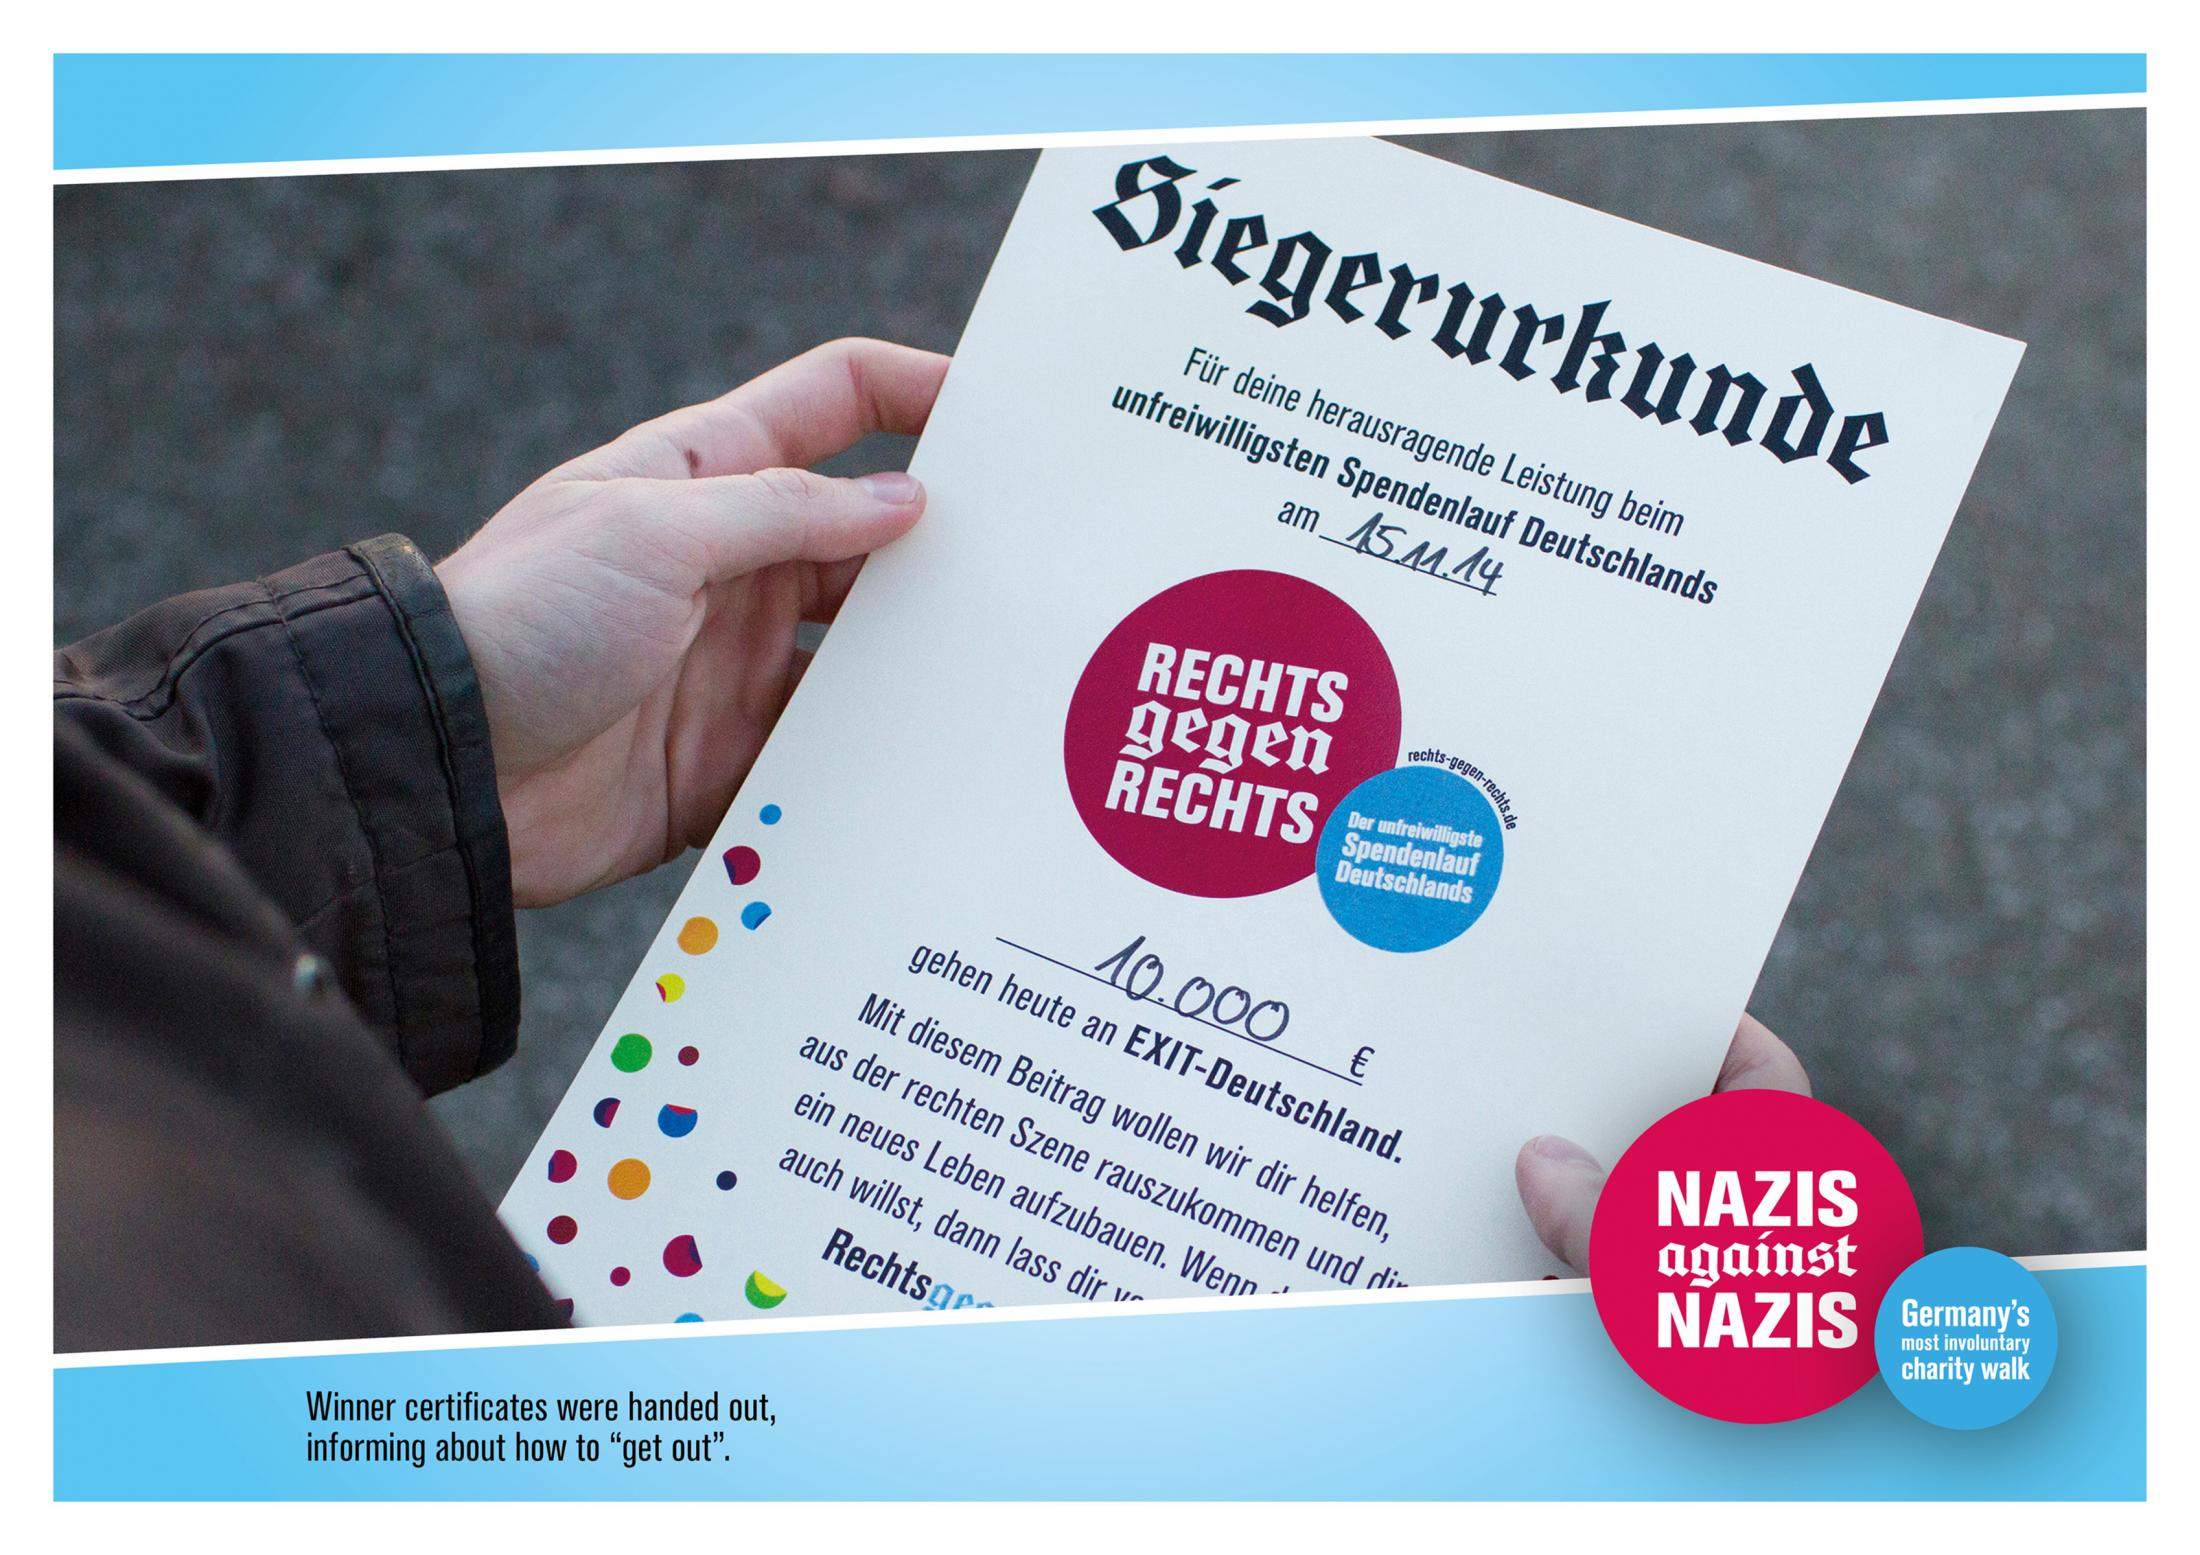 Image Media for Nazis against Nazis- Germany's most involuntary charity walk